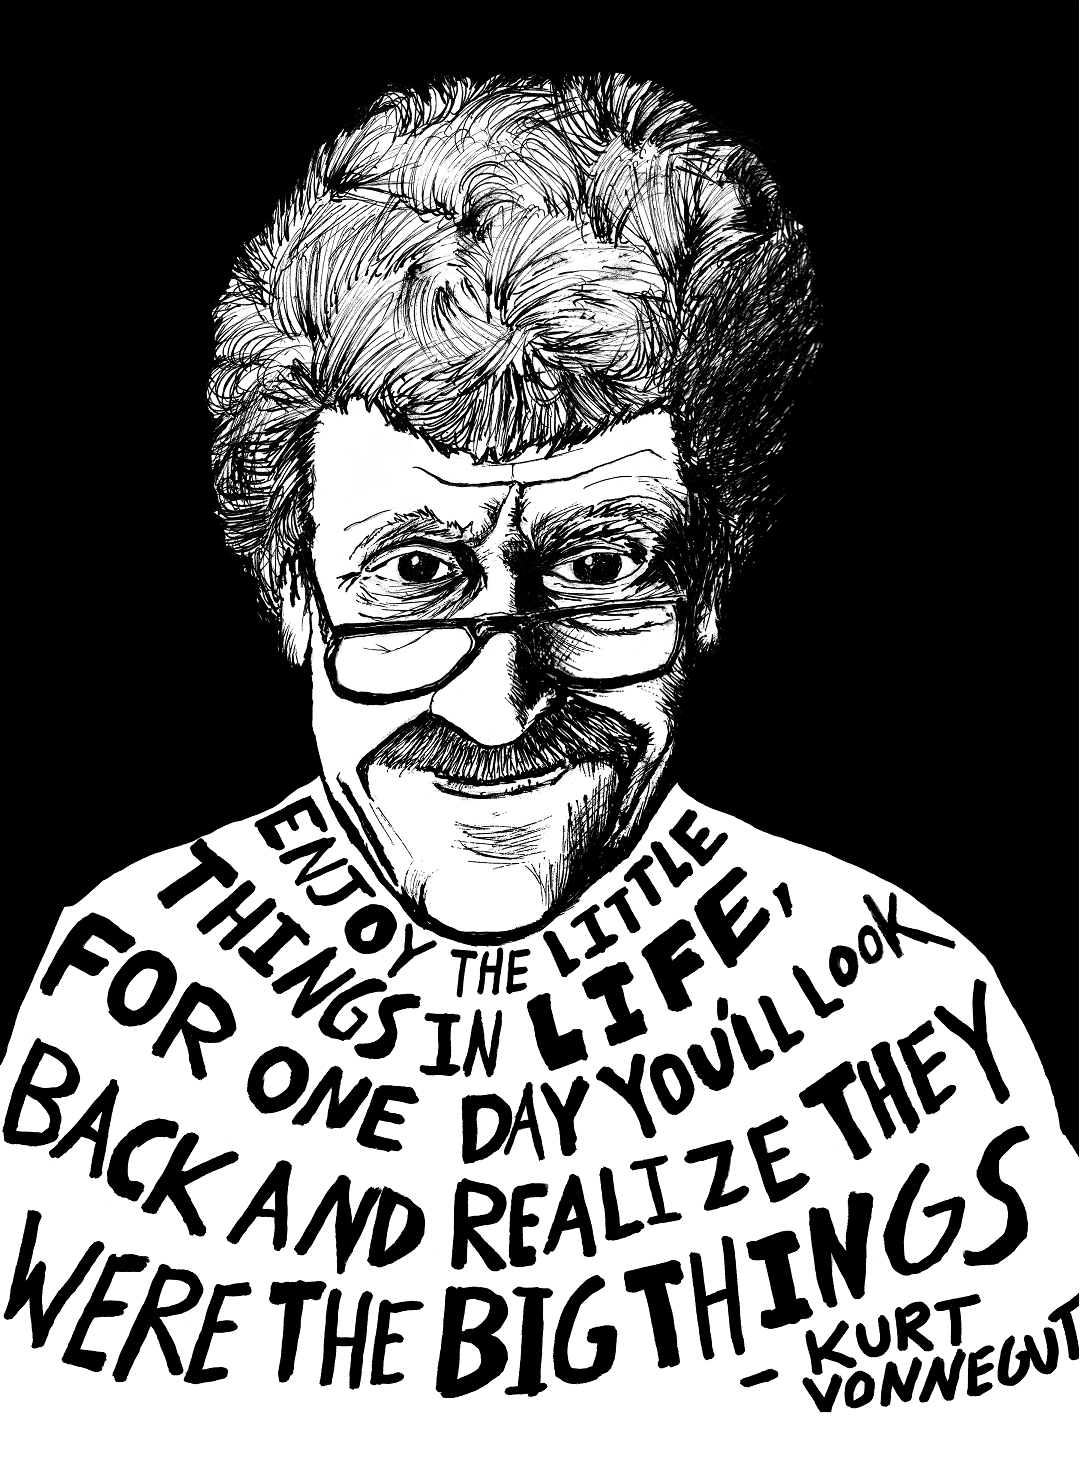 Kurt Vonnegut depicted in art by Ryan Sheffield